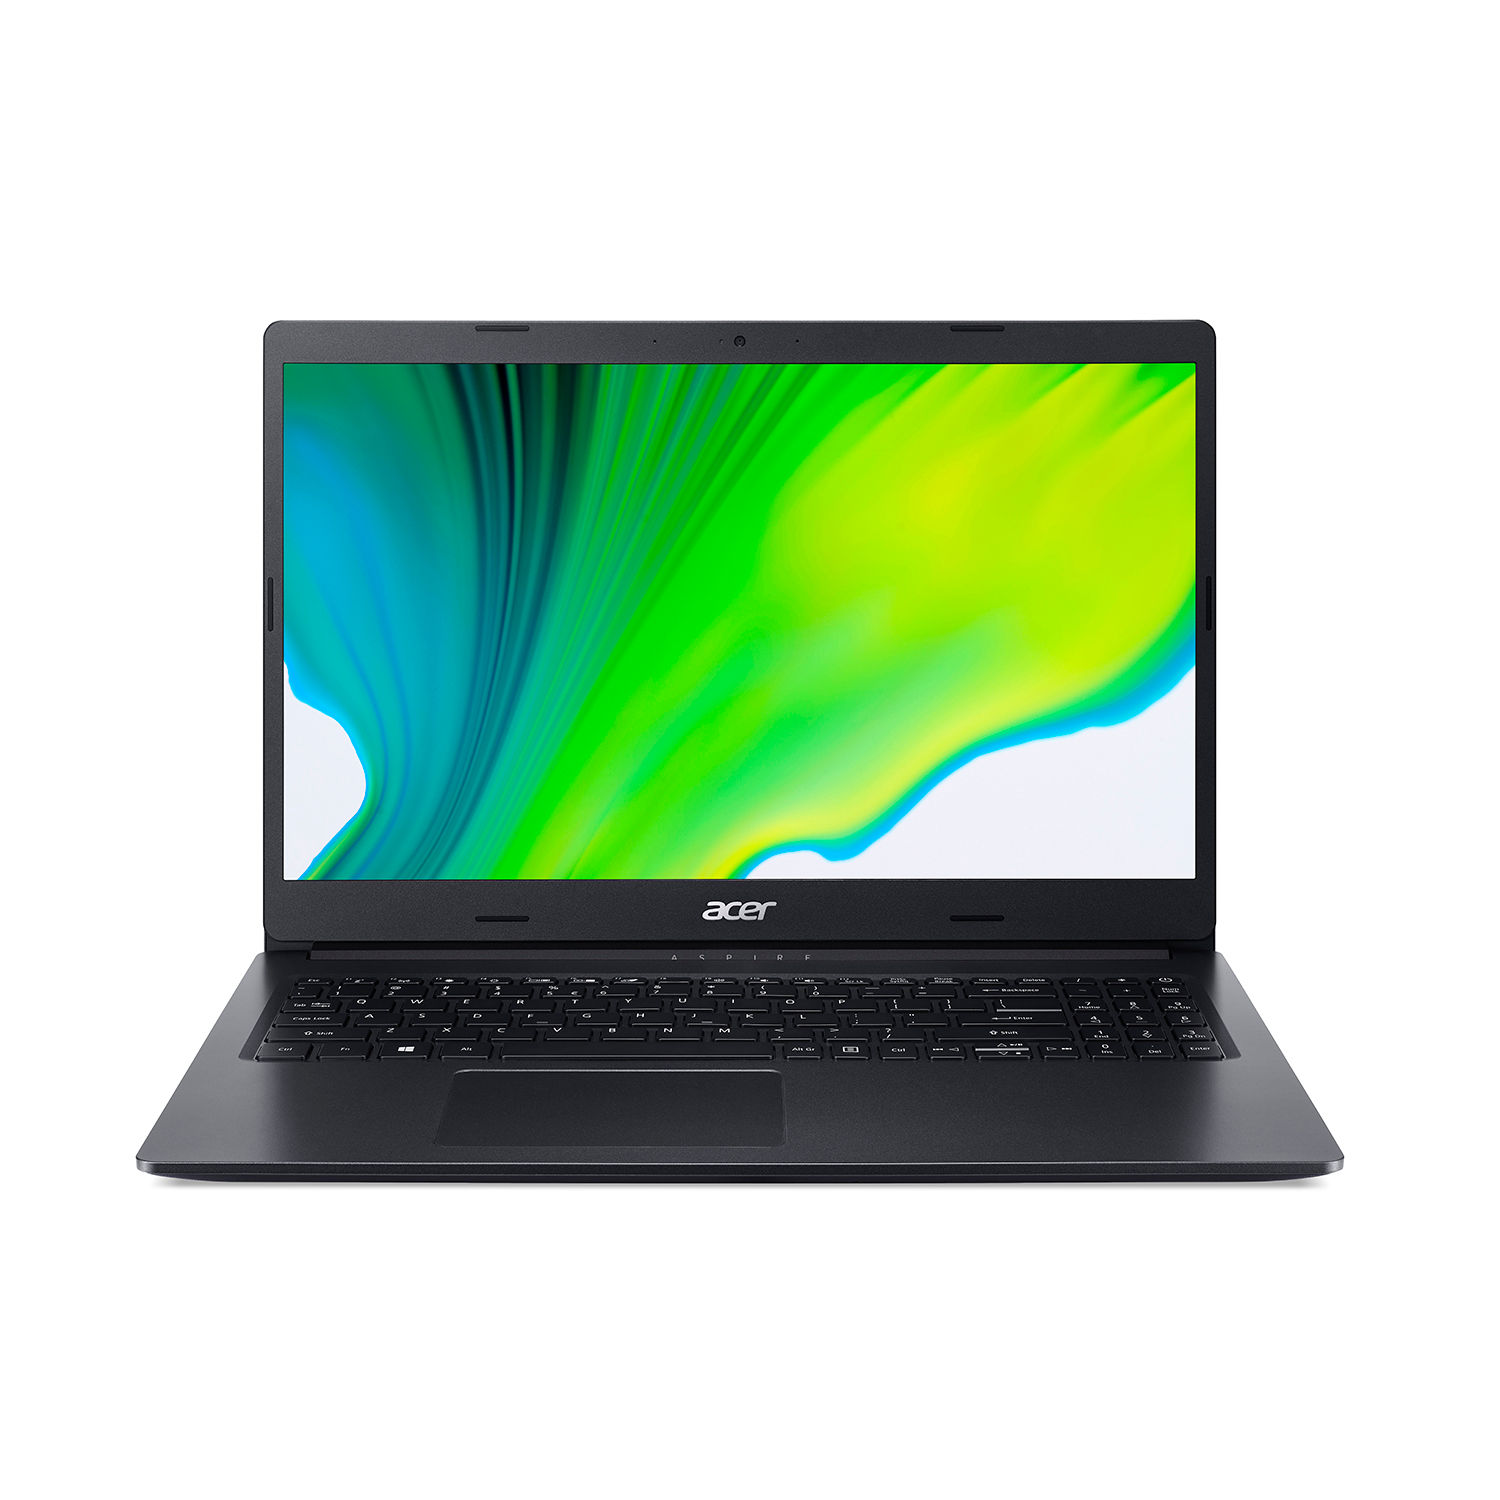 Acer 15.6 inch AMD Athlon 3020e Laptop